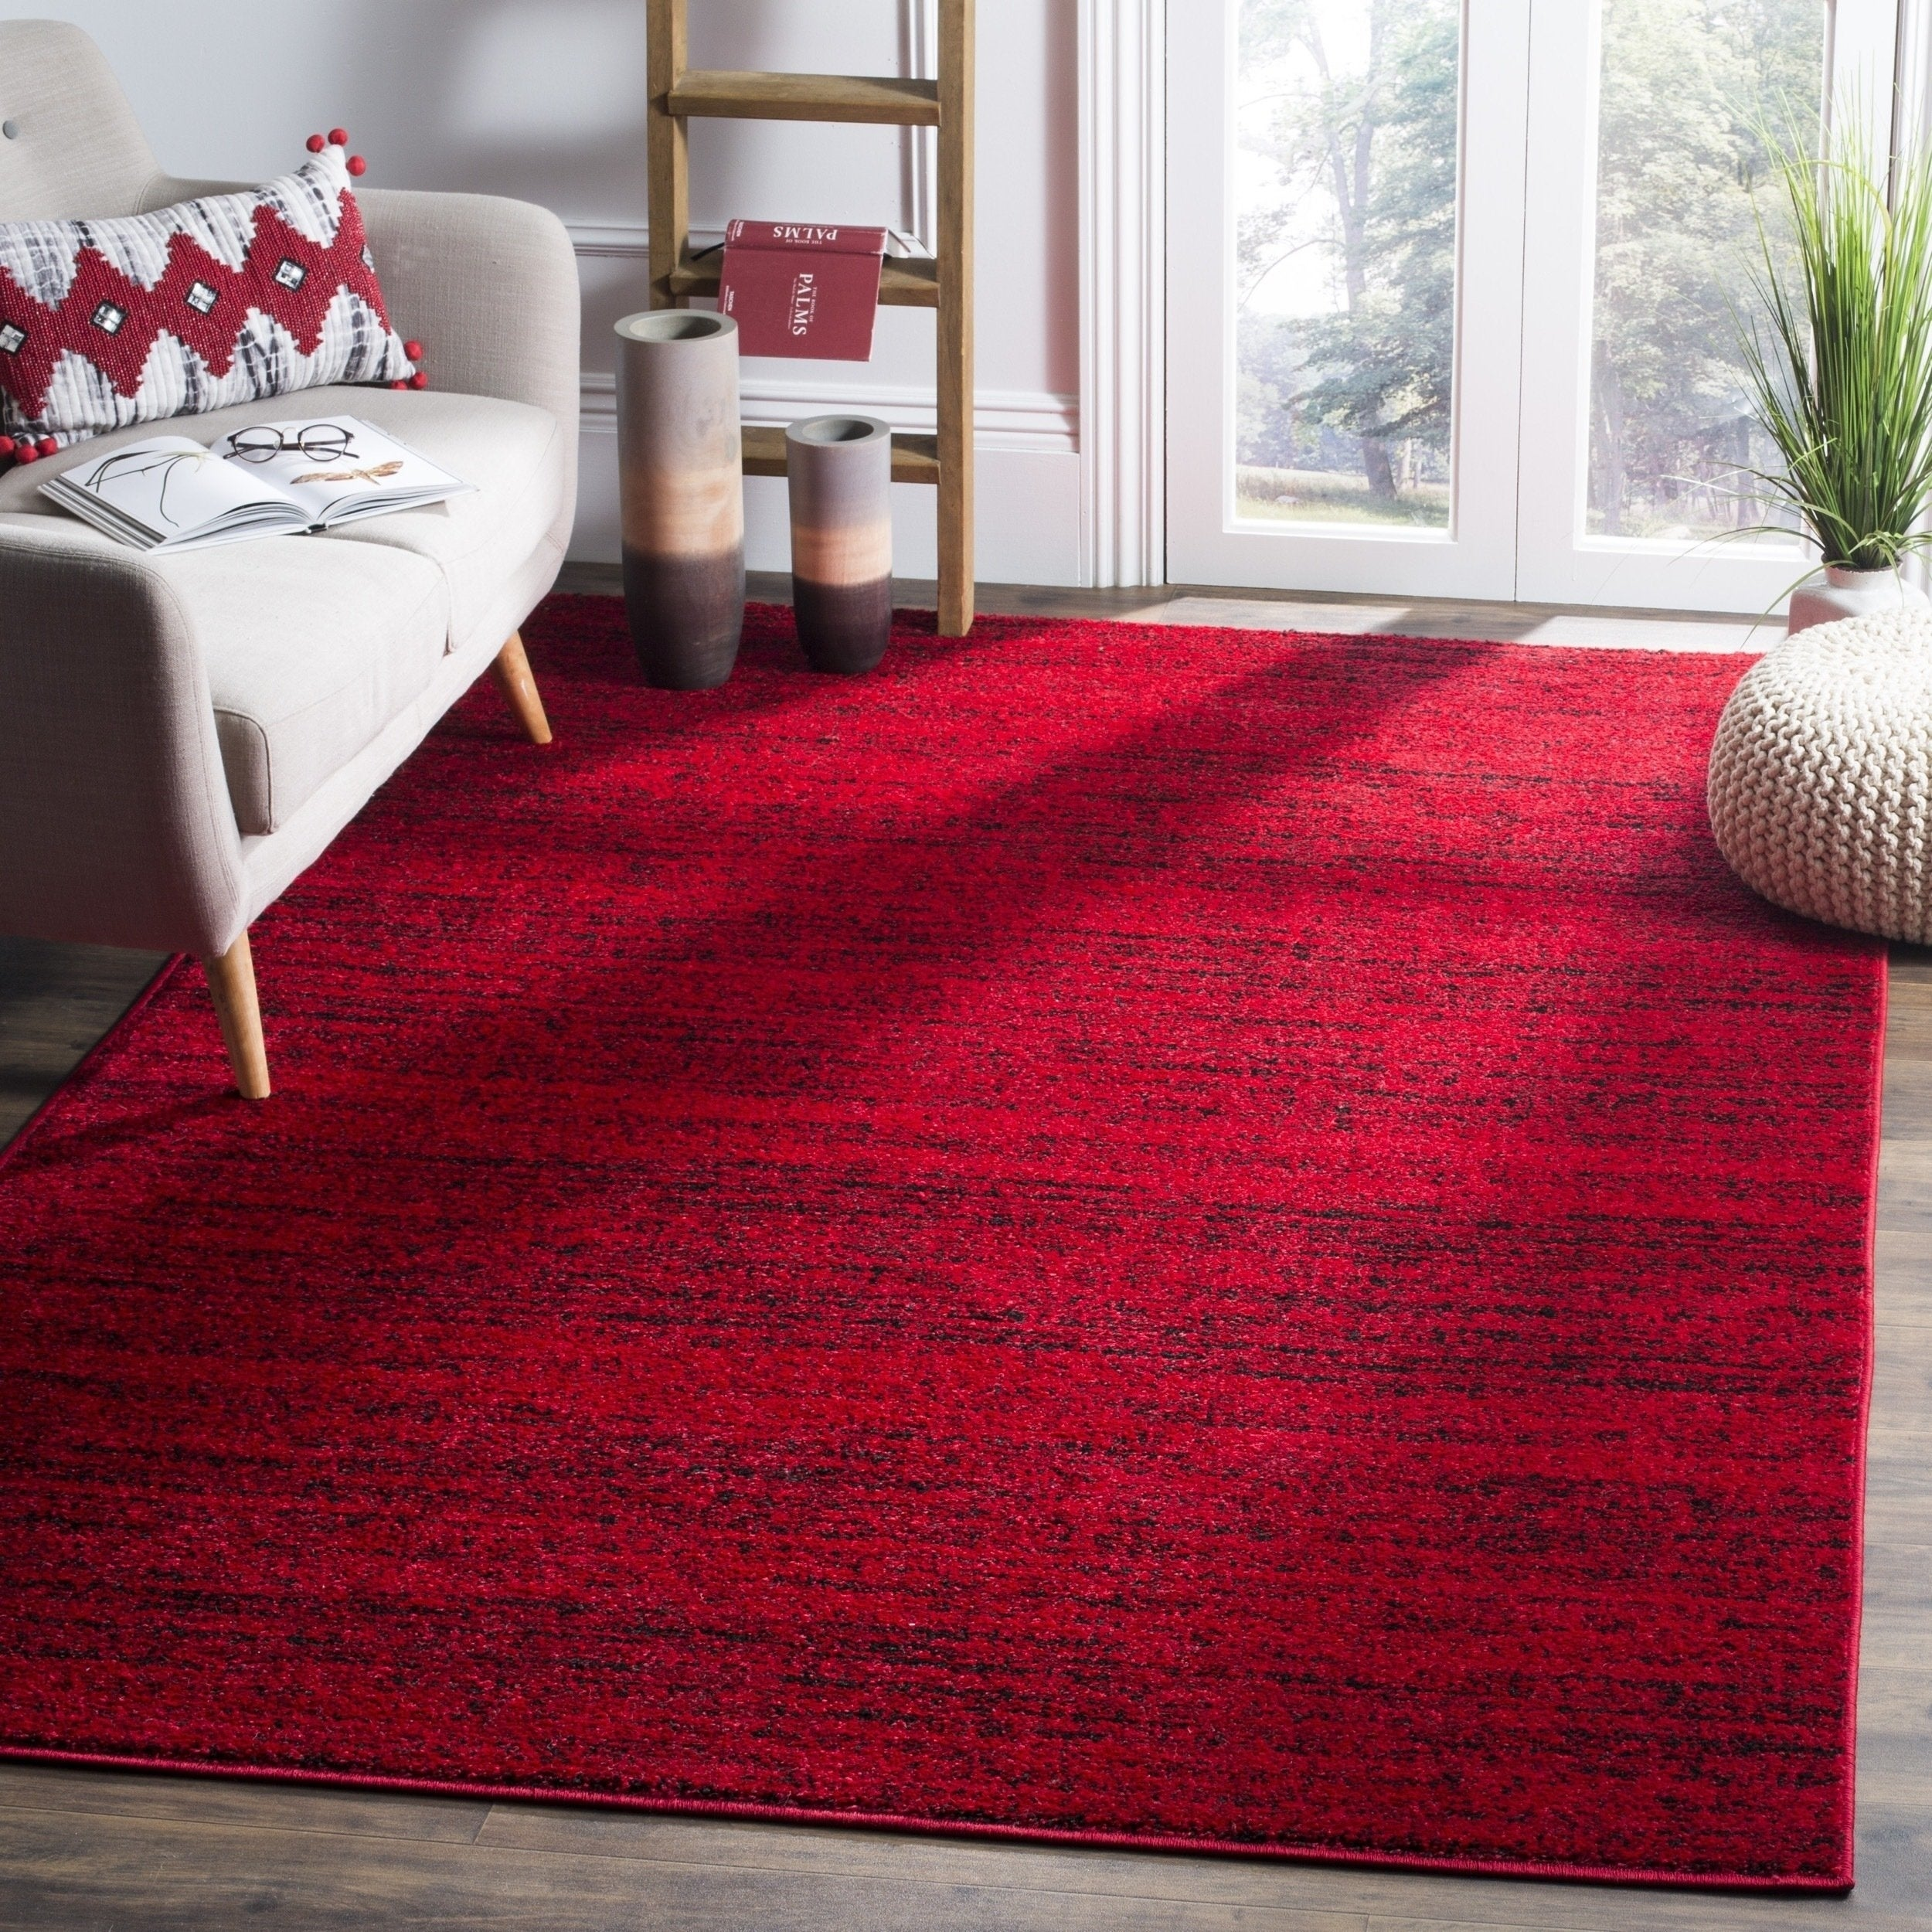 Shop safavieh adirondack modern red black rug 4 x 6 on sale free shipping today overstock com 10971543